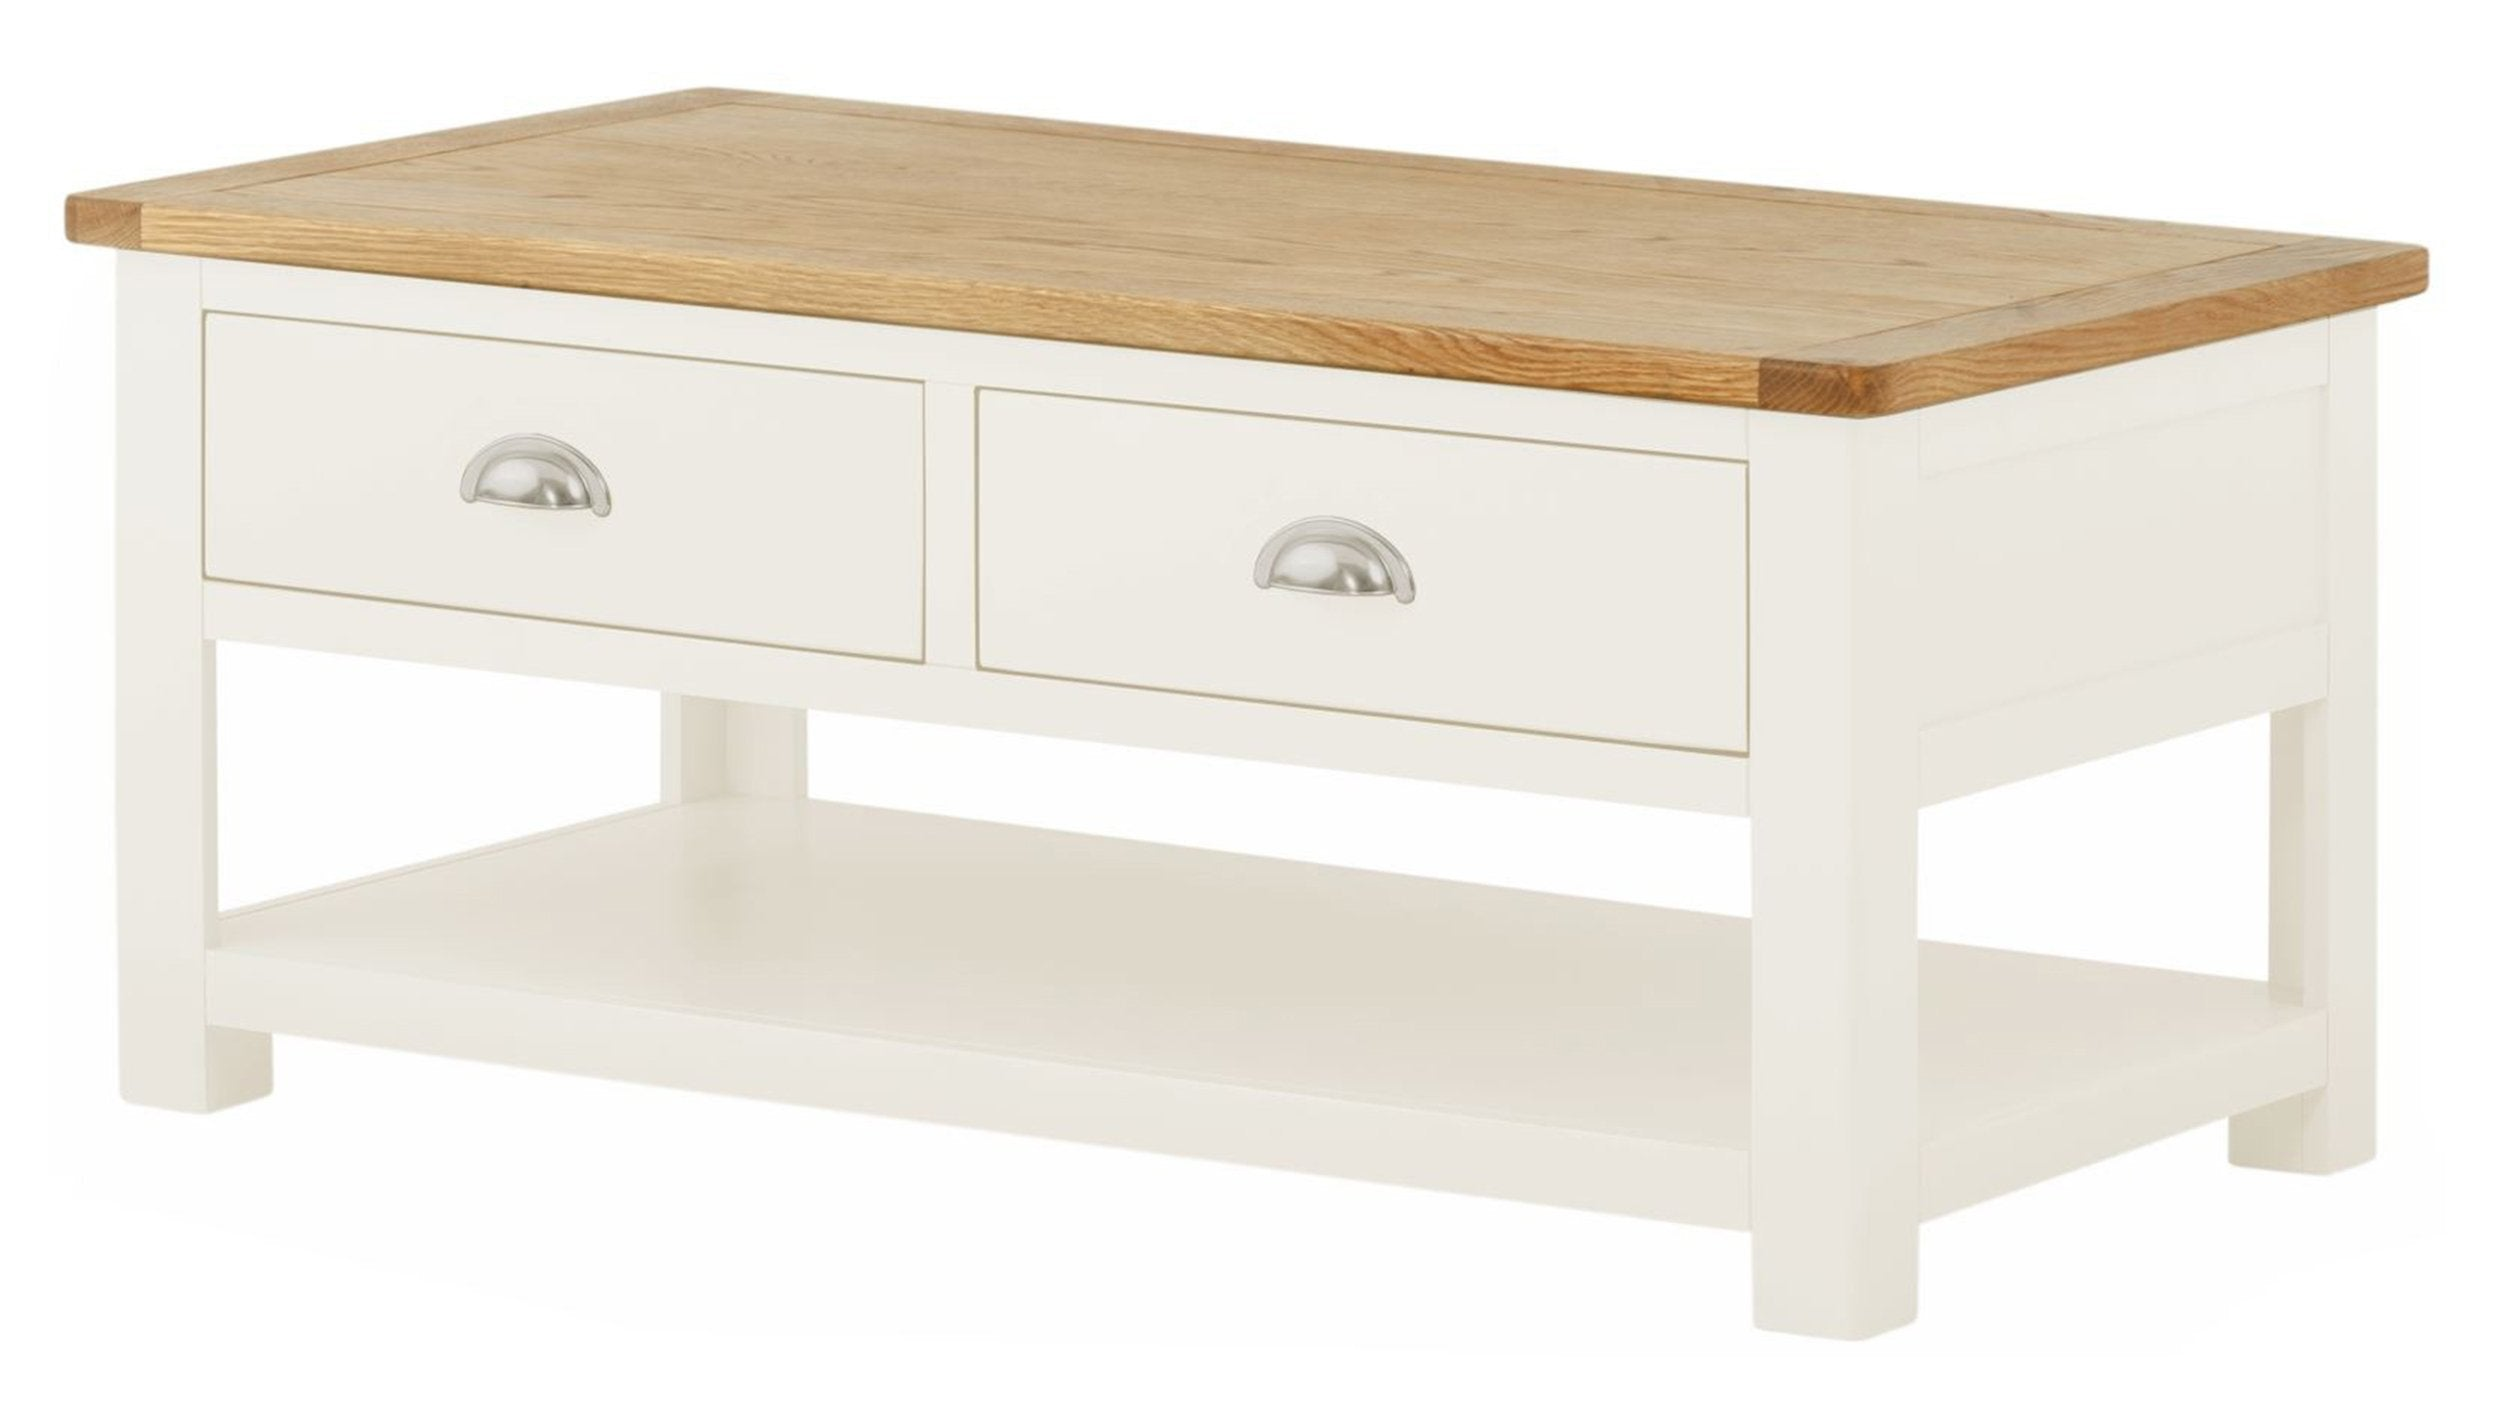 Arlington Two Tone Coffee Table with Drawers - AHF Furniture & Carpets